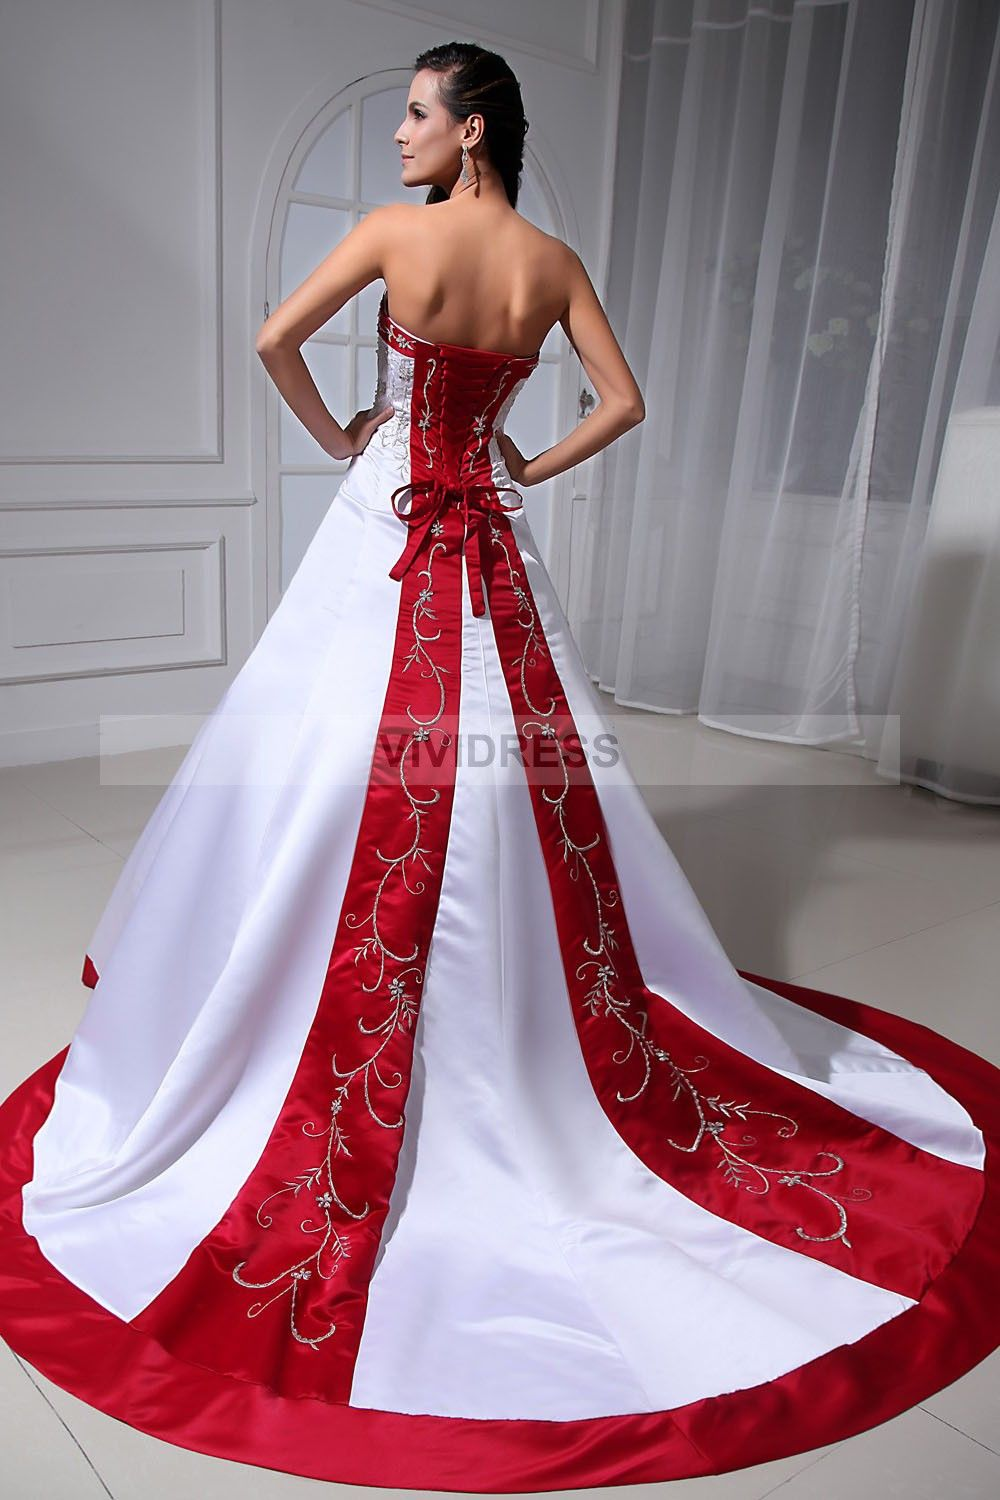 Pin By Naz Saiyed On Long Dress Wedding Dresses Corset Gowns Red Bridal Gown [ 1500 x 1000 Pixel ]